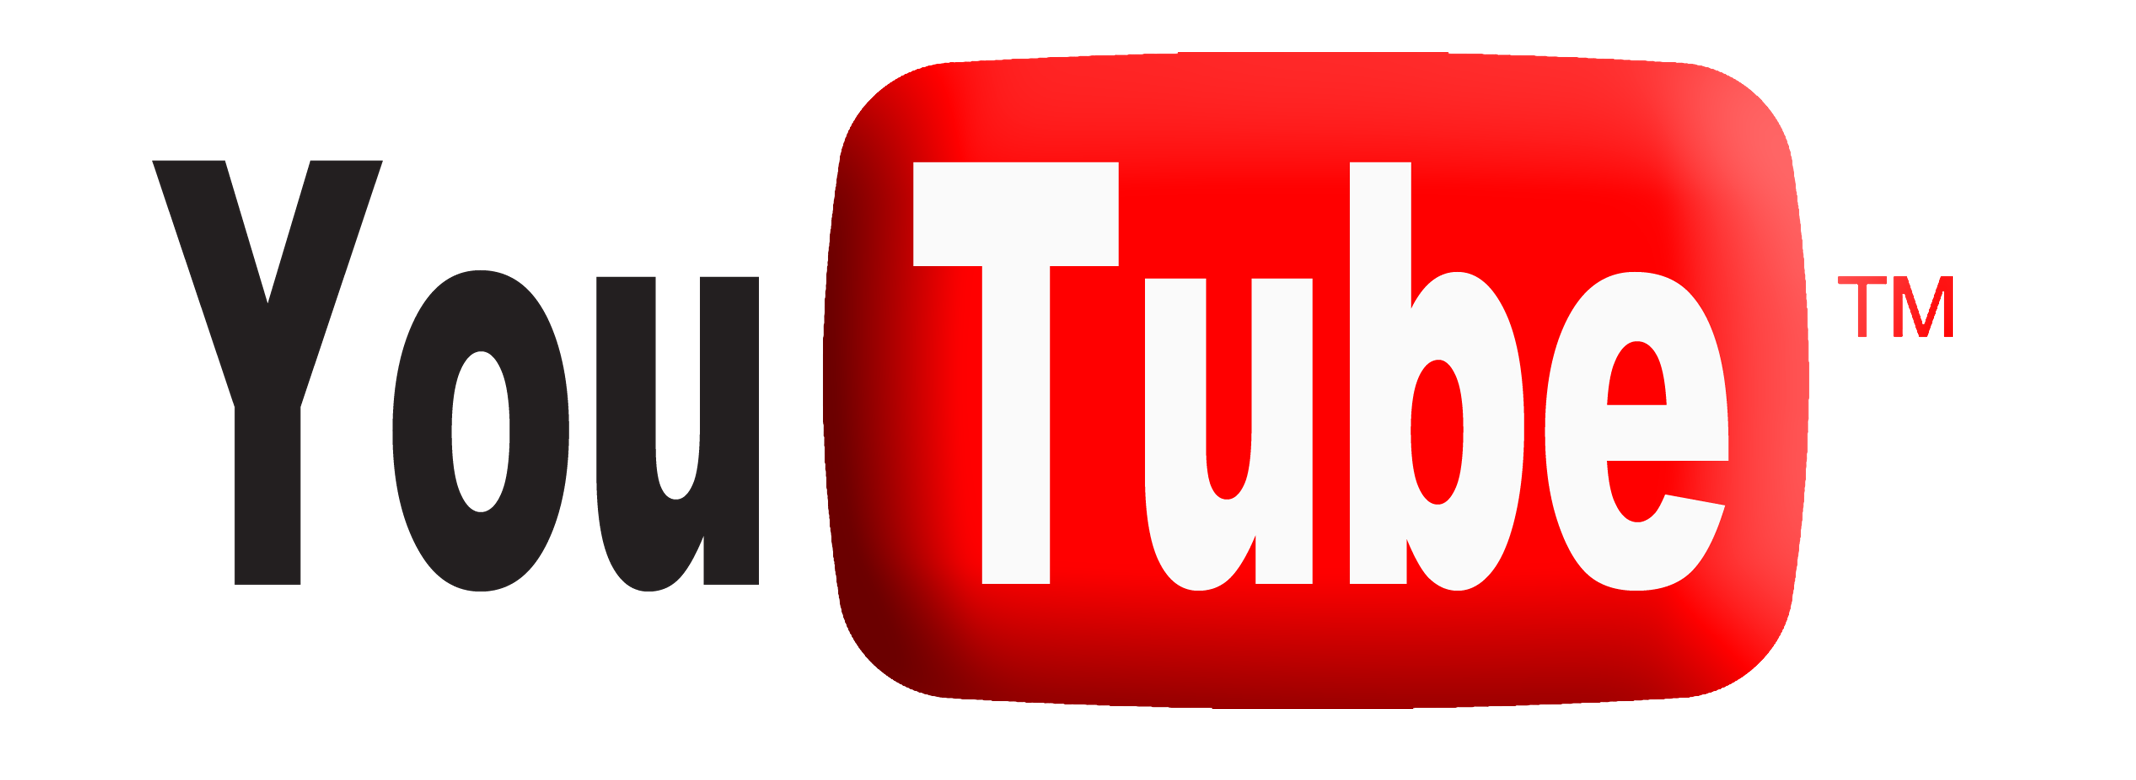 Youtube HD PNG - 93464